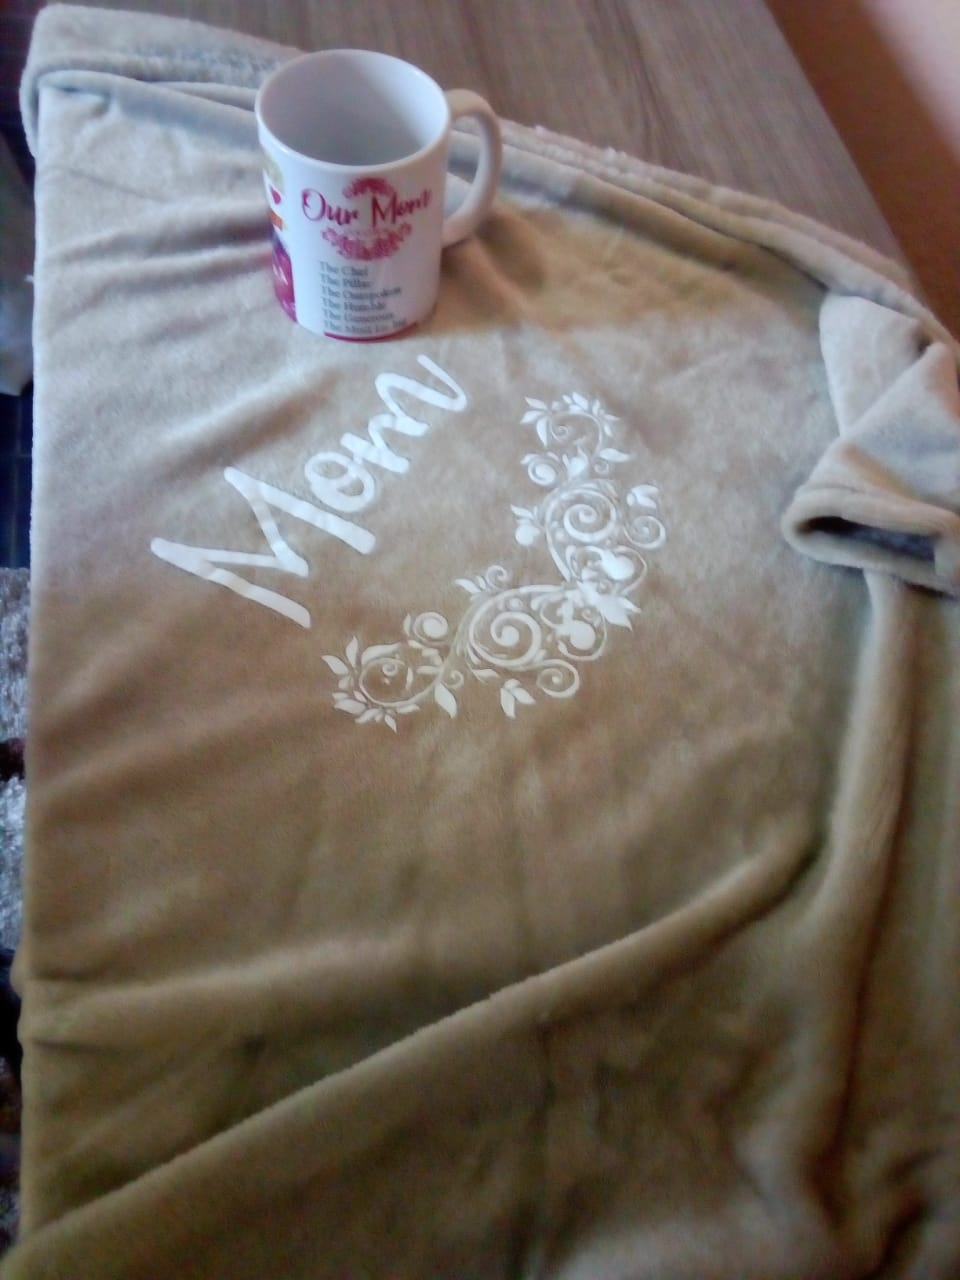 Printed Clothing To Keep You Warm During cold Days. Gowns, Fleece Blankets, Hood